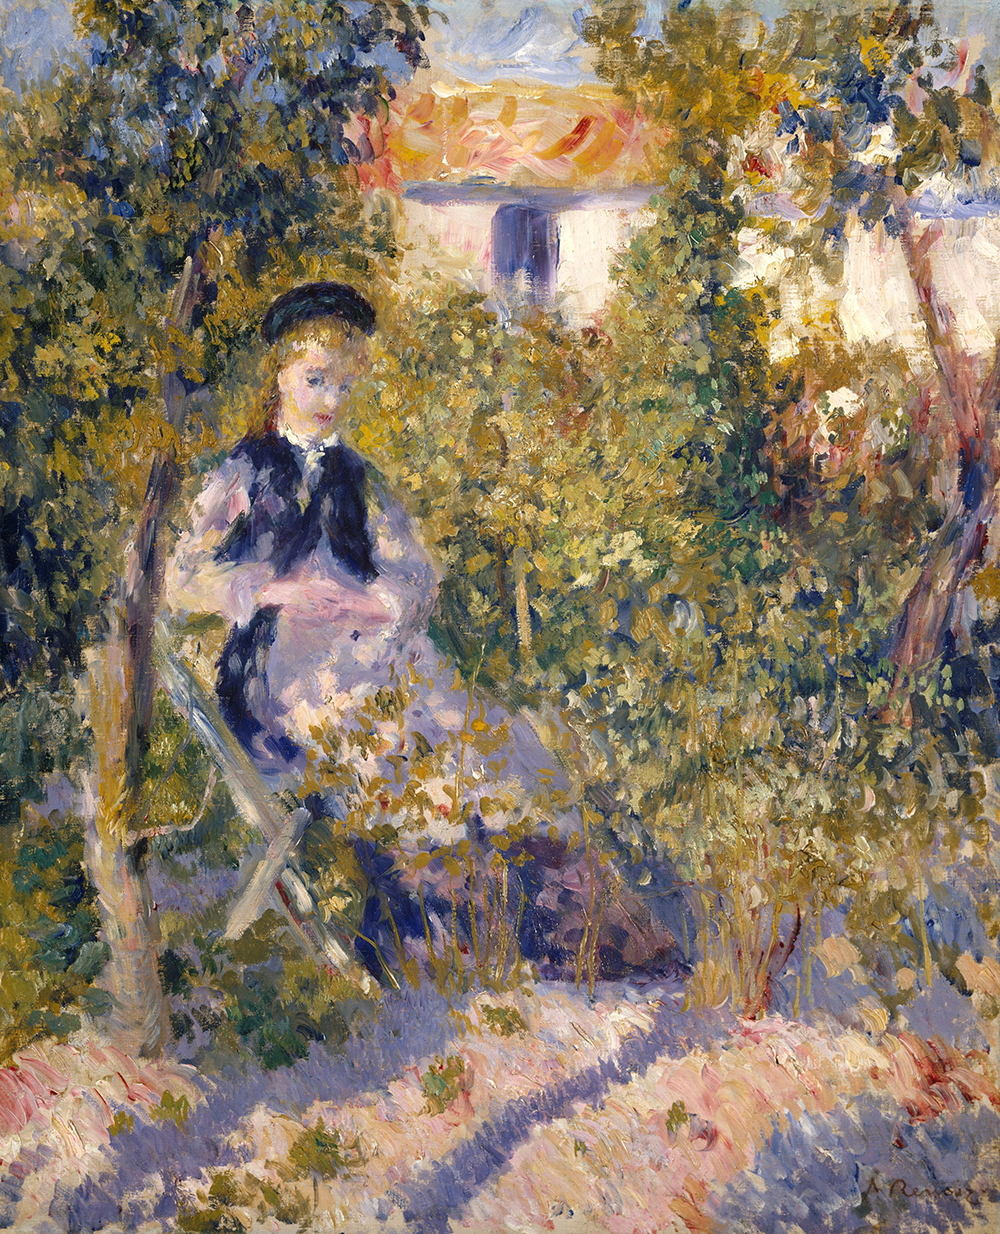 """Nini in the Garden,"" by Auguste Renoir, 1876. The Metropolitan Museum of Art, The Walter H. and Leonore Annenberg Collection, Gift of Walter H. and Leonore Annenberg, 2002, Bequest of Walter H. Annenberg, 2002."